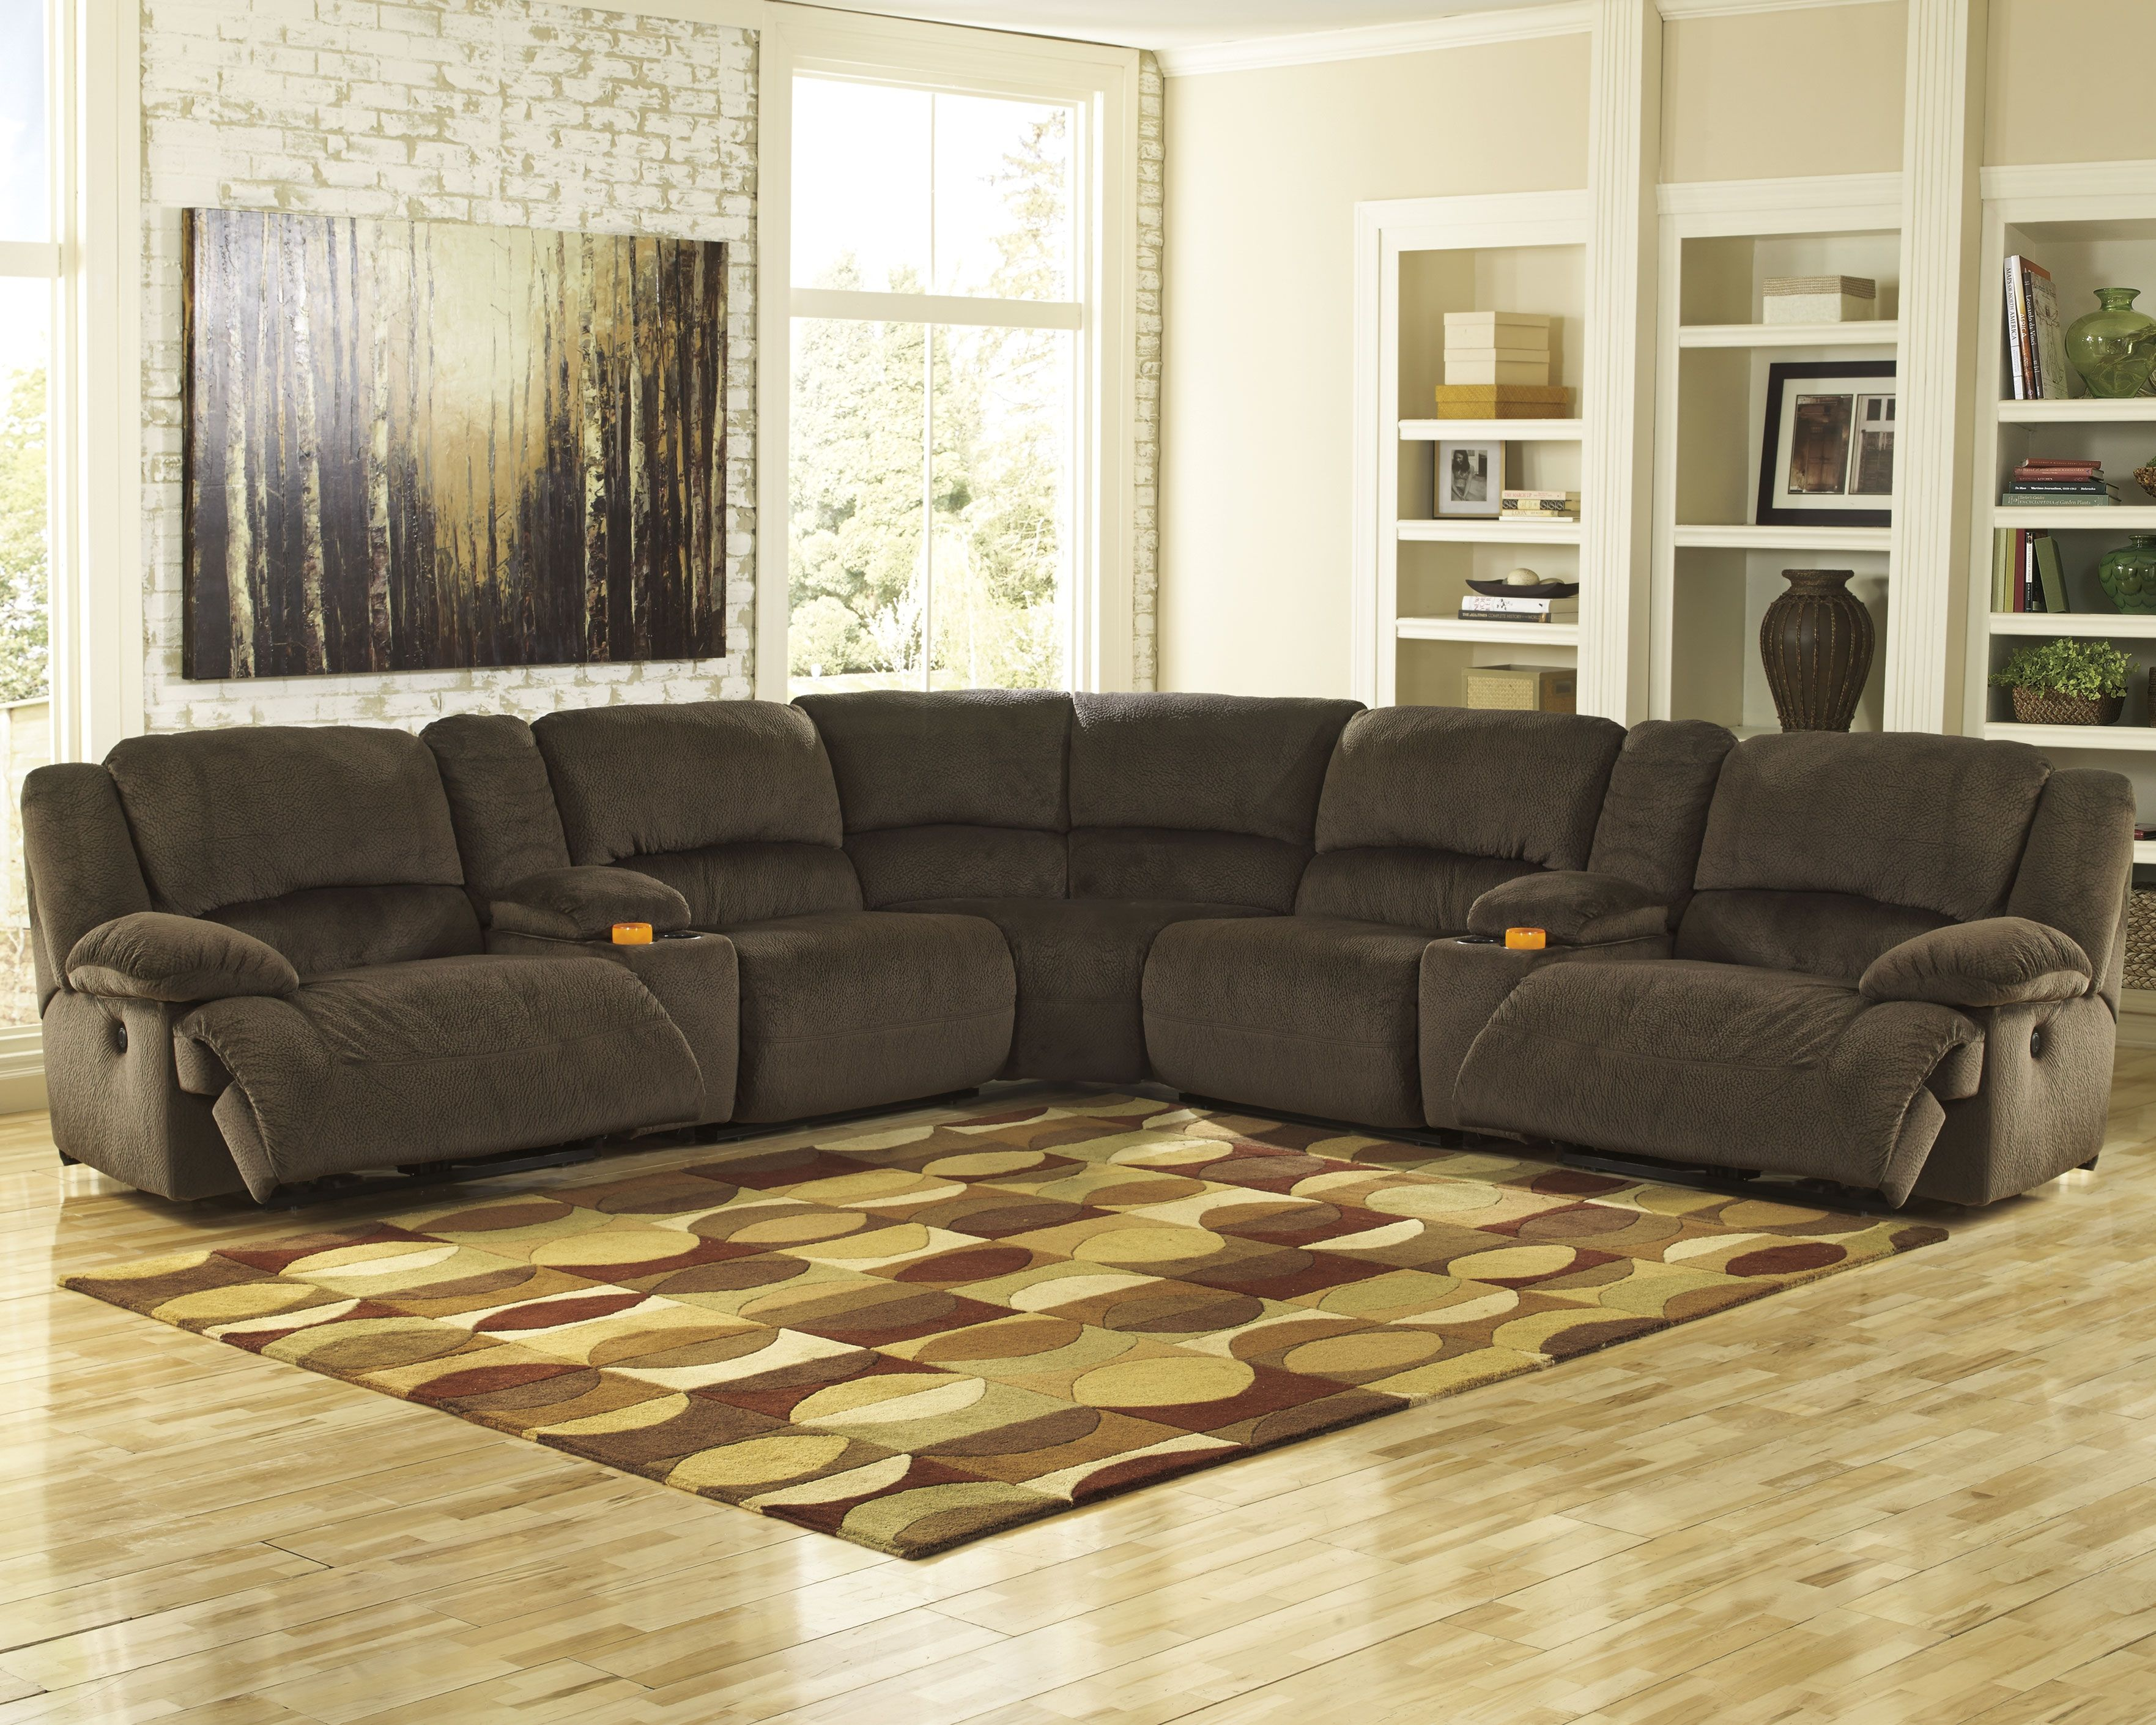 Toletta 7 Piece Reclining Sectional Chocolate Products In